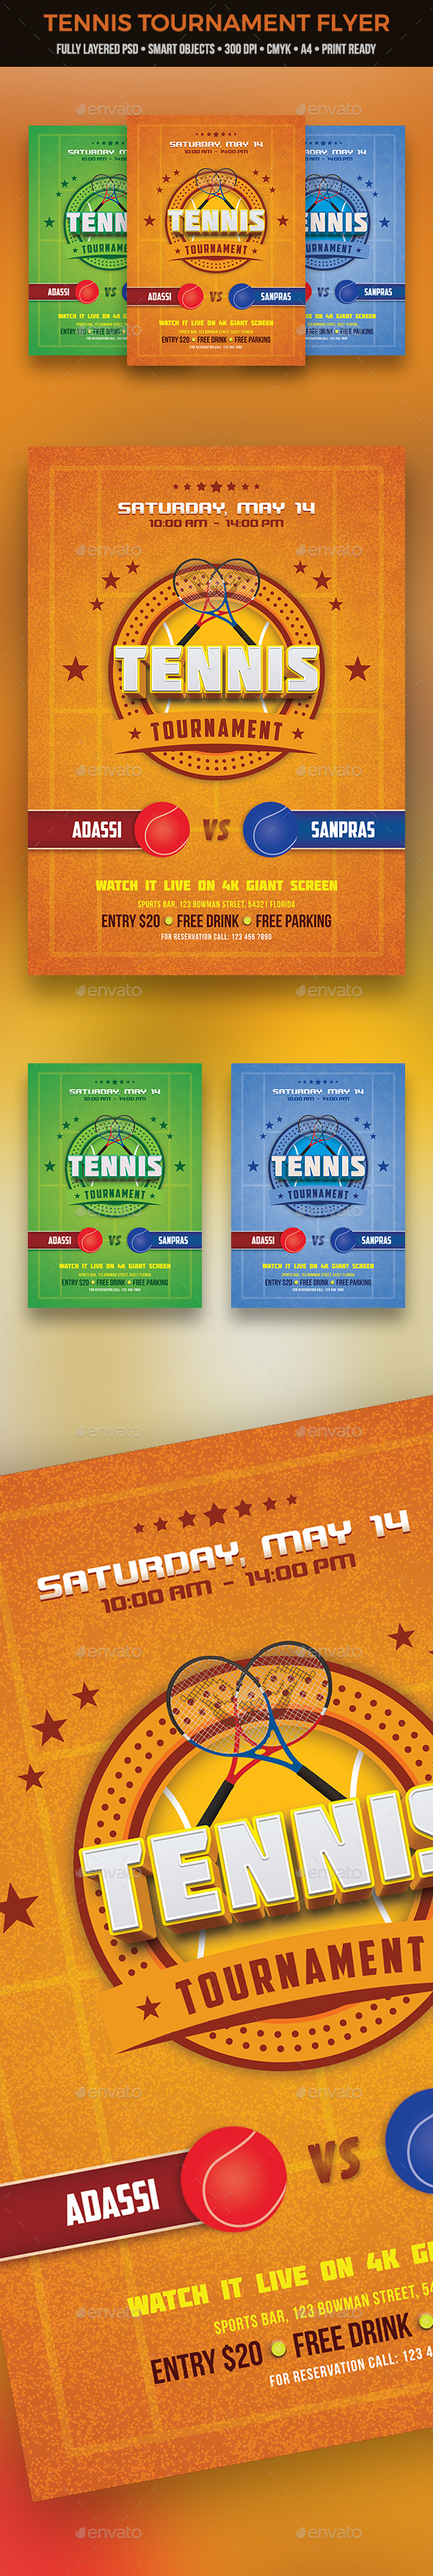 Tennis Tournament Flyer - Sports Events